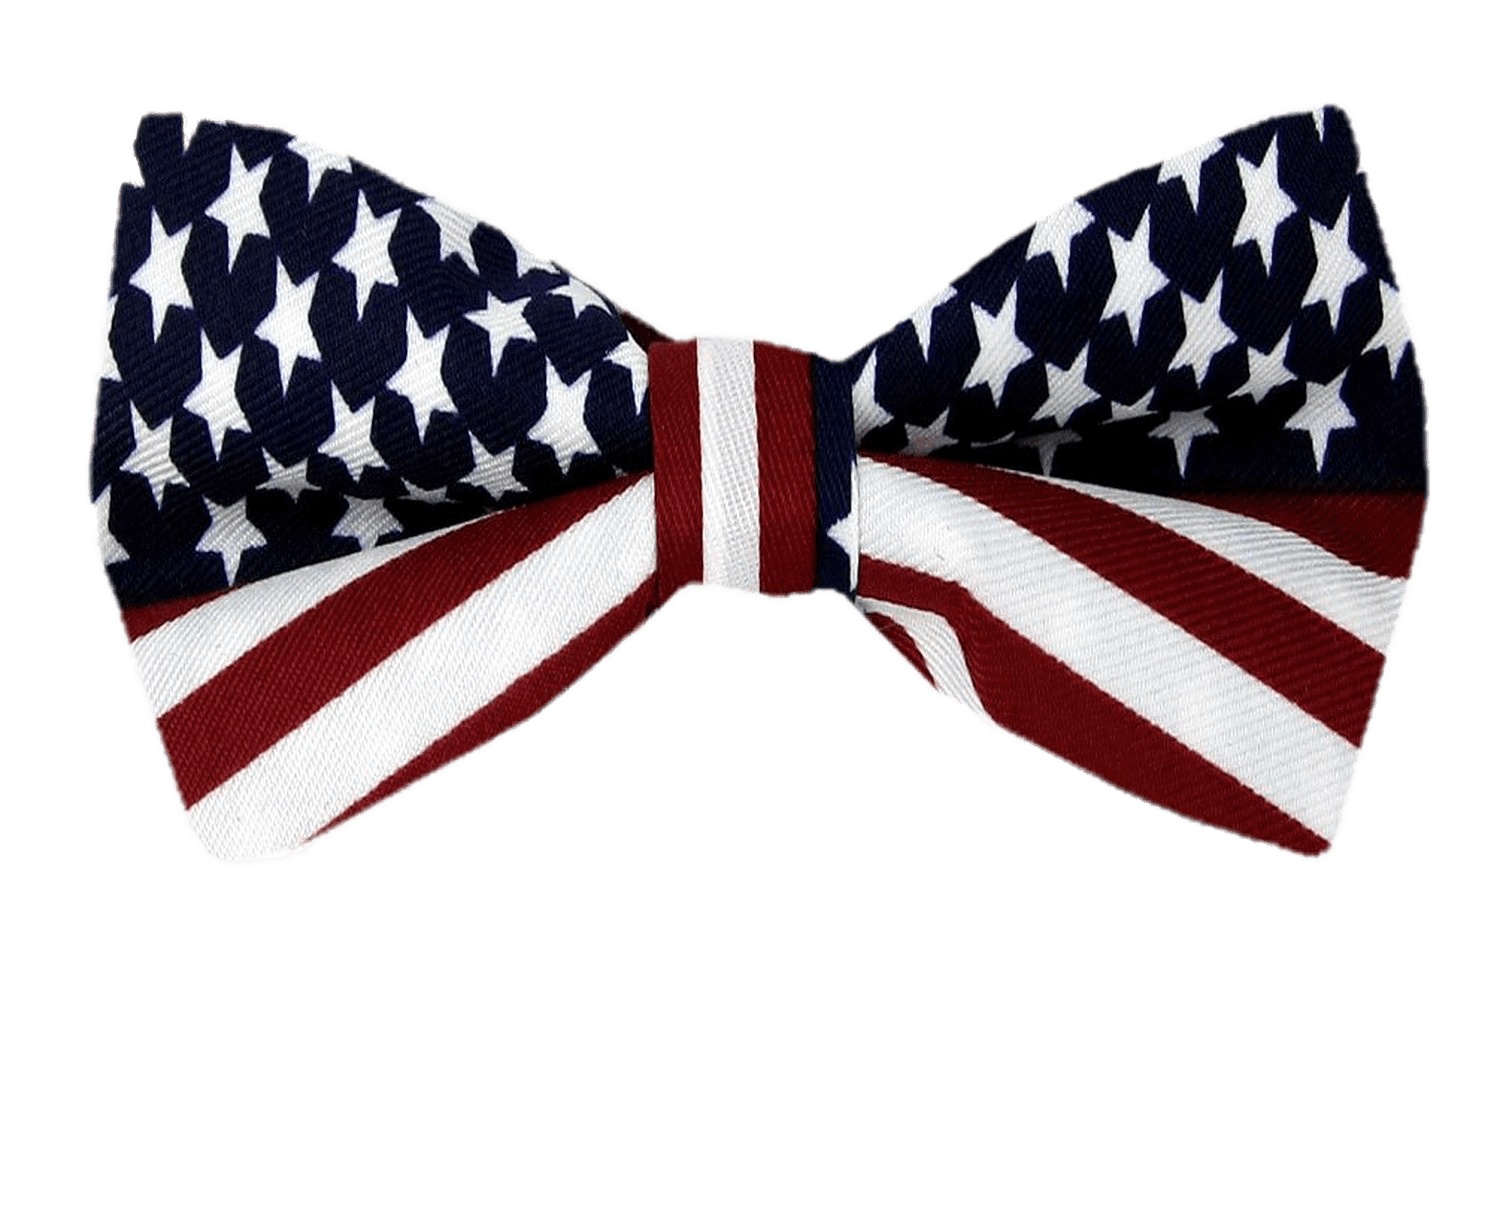 Bow tie png. Ties transparent images stickpng